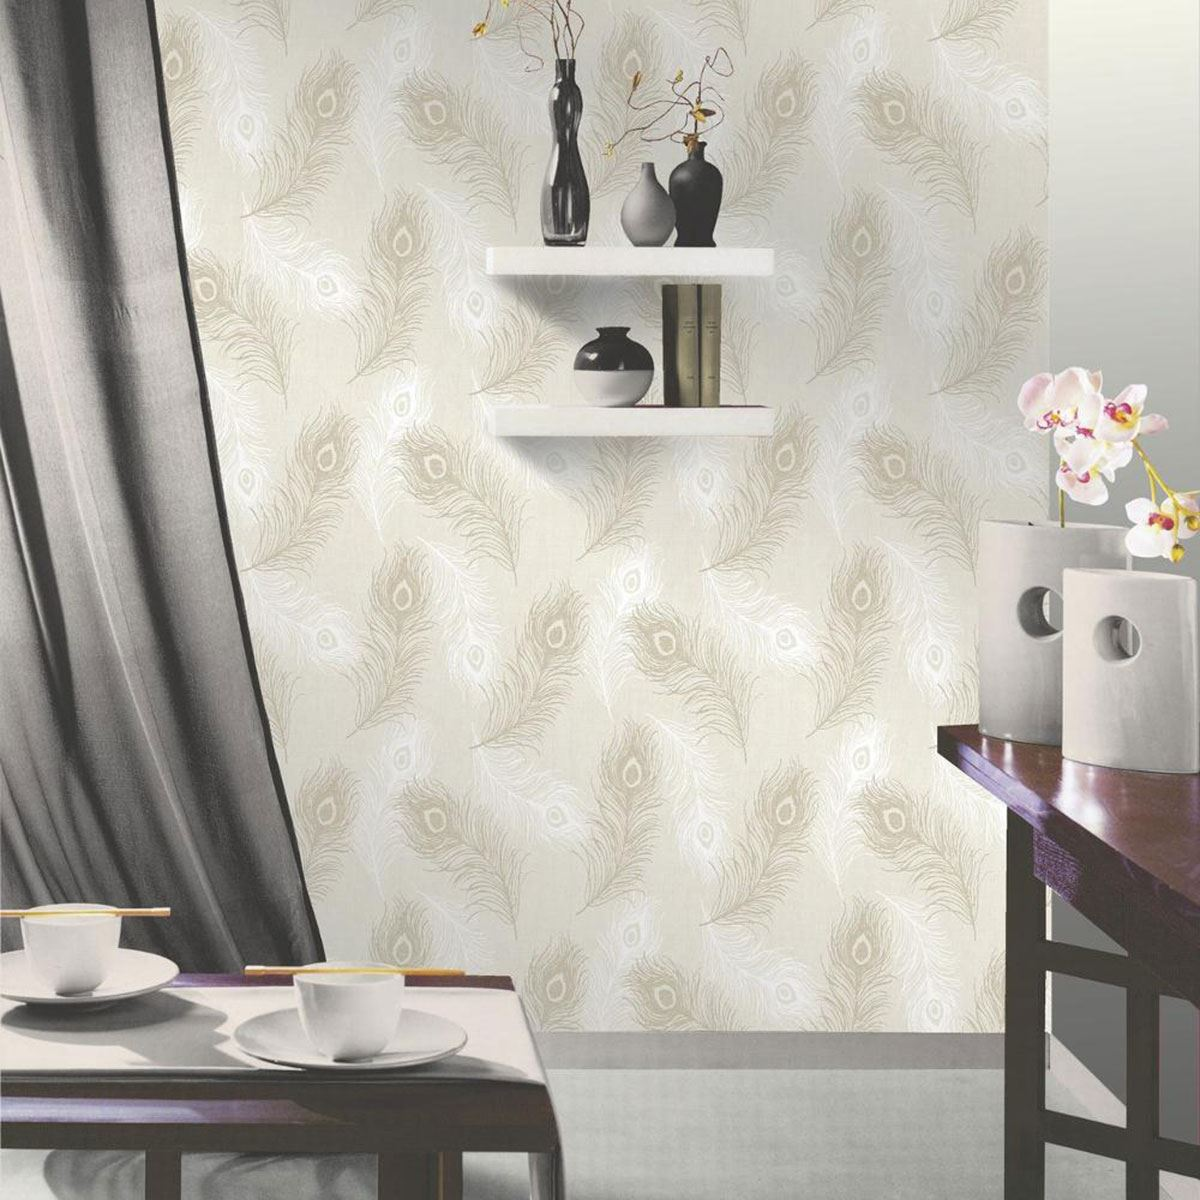 SHABBY CHIC FLORAL WALLPAPER IN VARIOUS DESIGNS WALL DECOR NEW FREE     SHABBY CHIC FLORAL WALLPAPER IN VARIOUS DESIGNS WALL